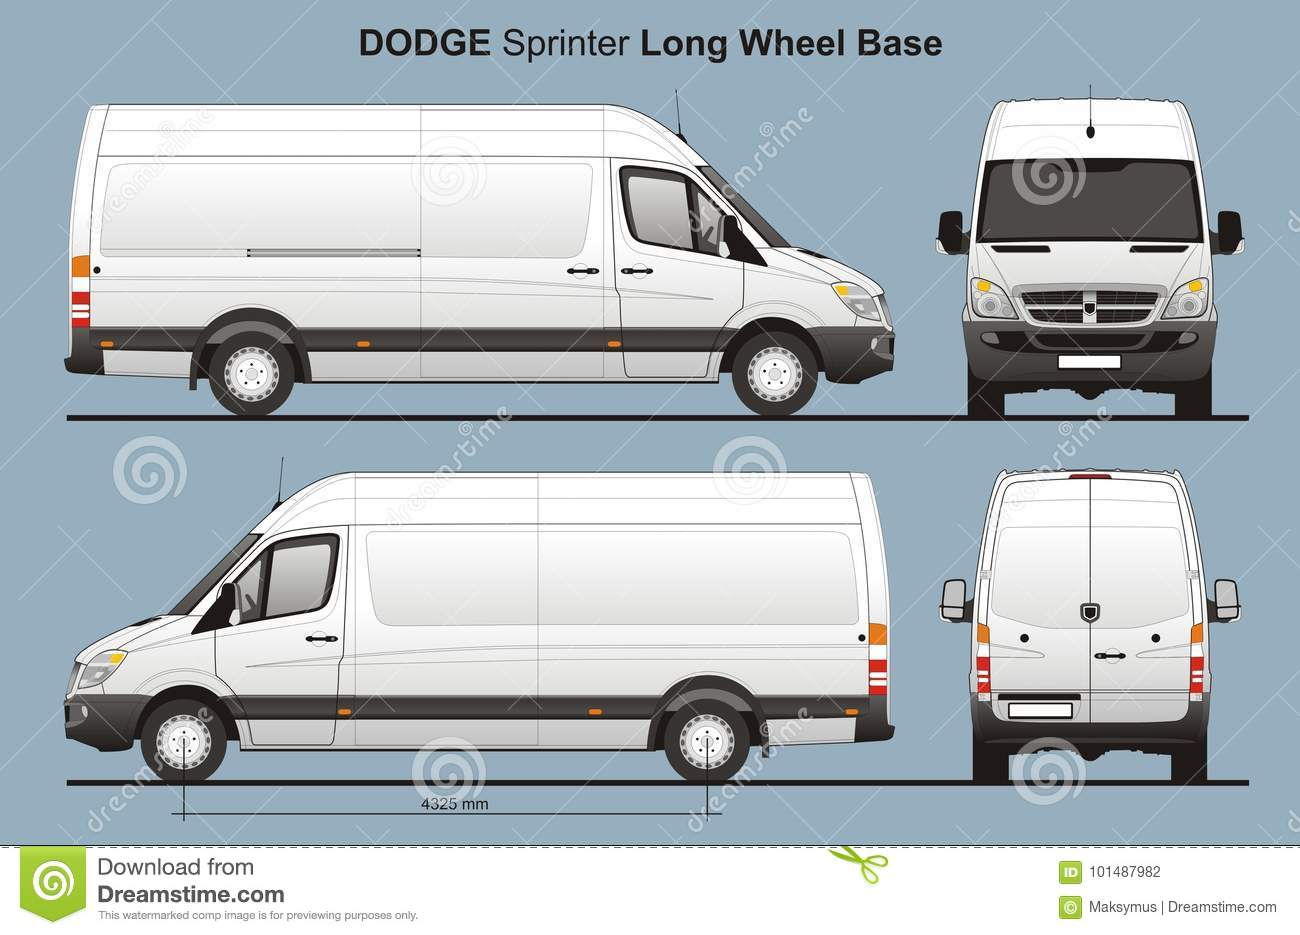 1f8001e27e Dodge Sprinter LWB Delivery Van Blueprint Editorial Photography ...